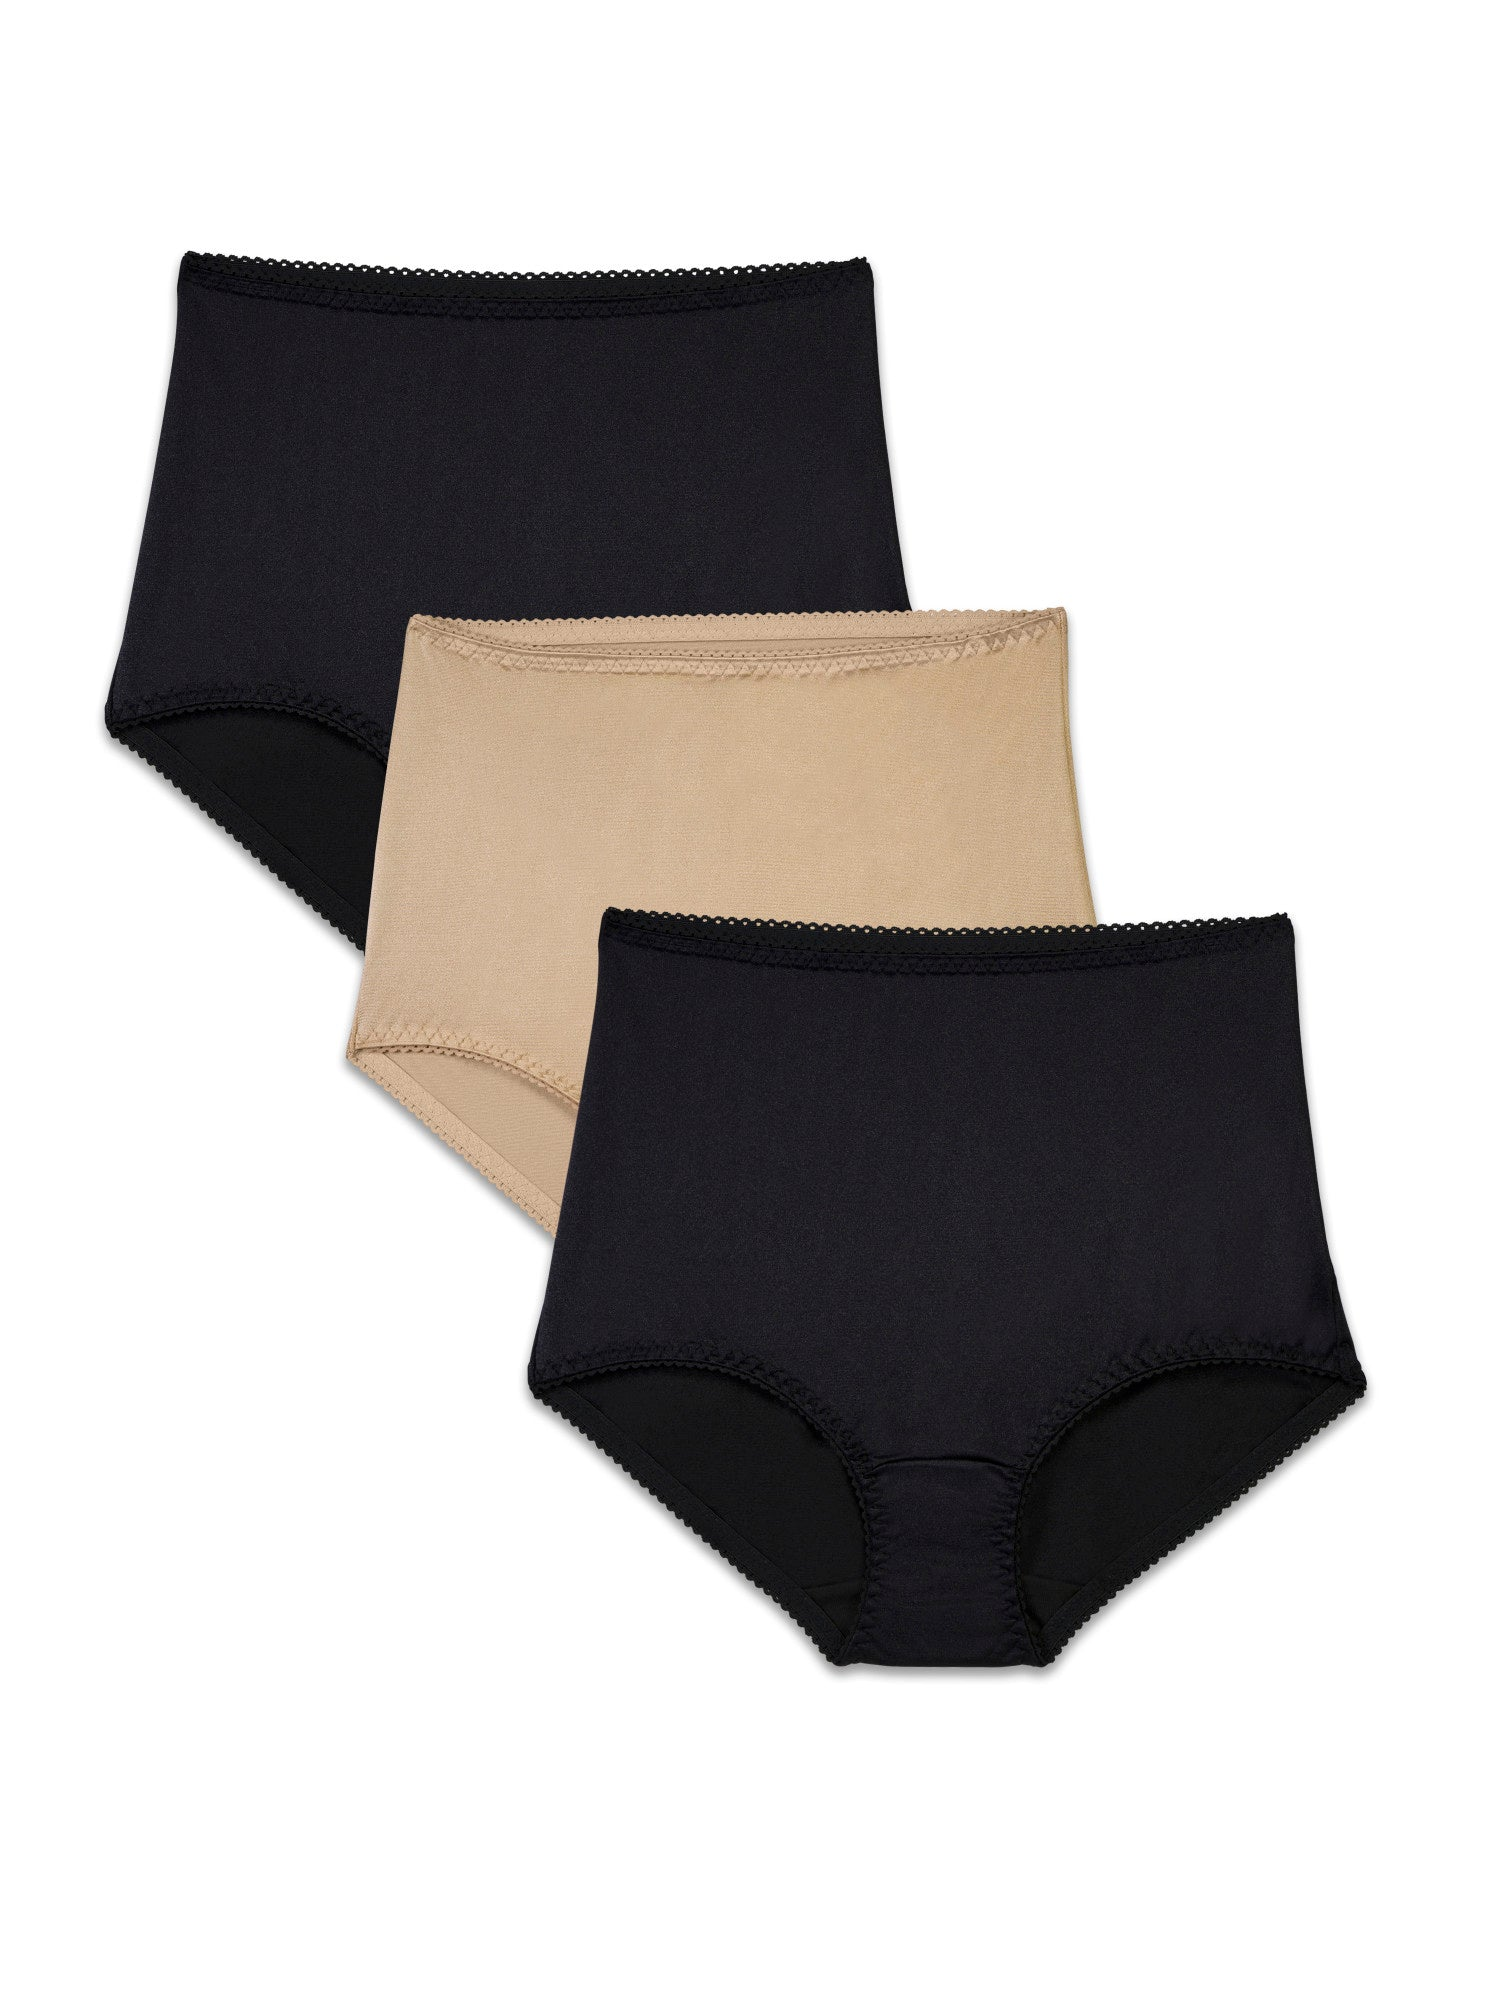 Women's Undershaper Panties